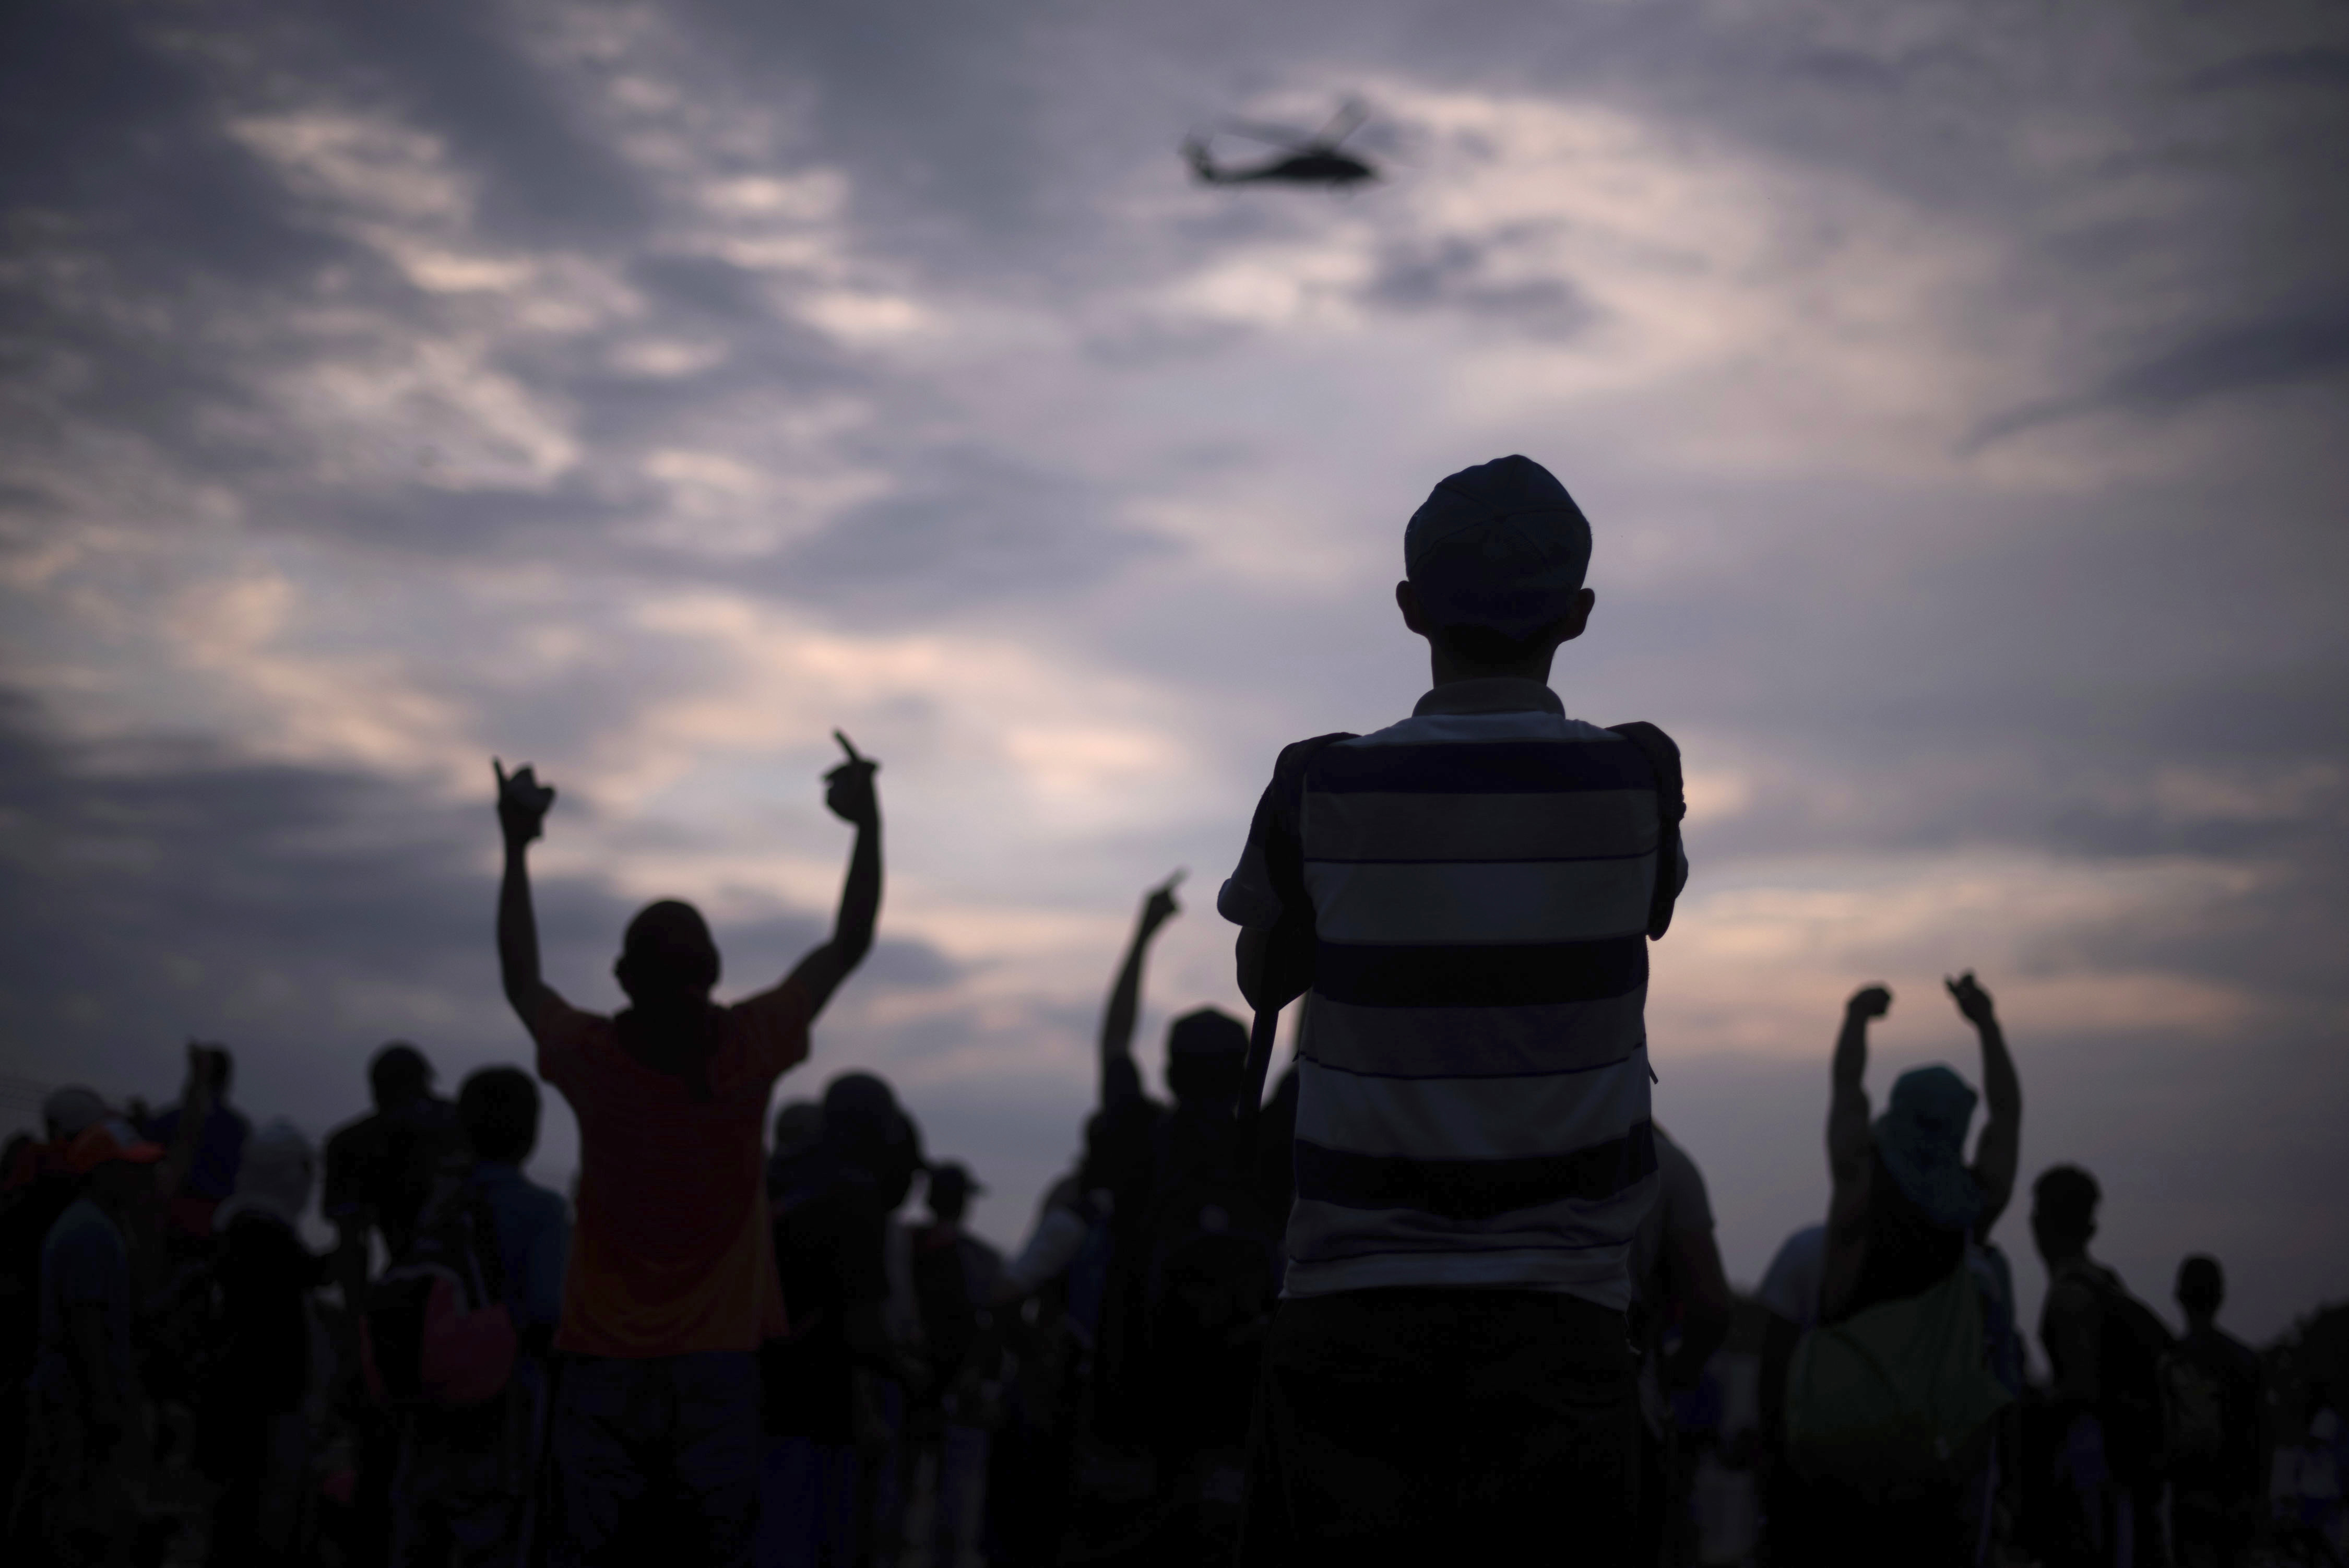 Central American migrants watch as a Mexican Federal Police helicopter flies over the border bridge connecting Guatemala and Mexico in Tecun Uman, Guatemala, Sunday, Oct. 28, 2018.